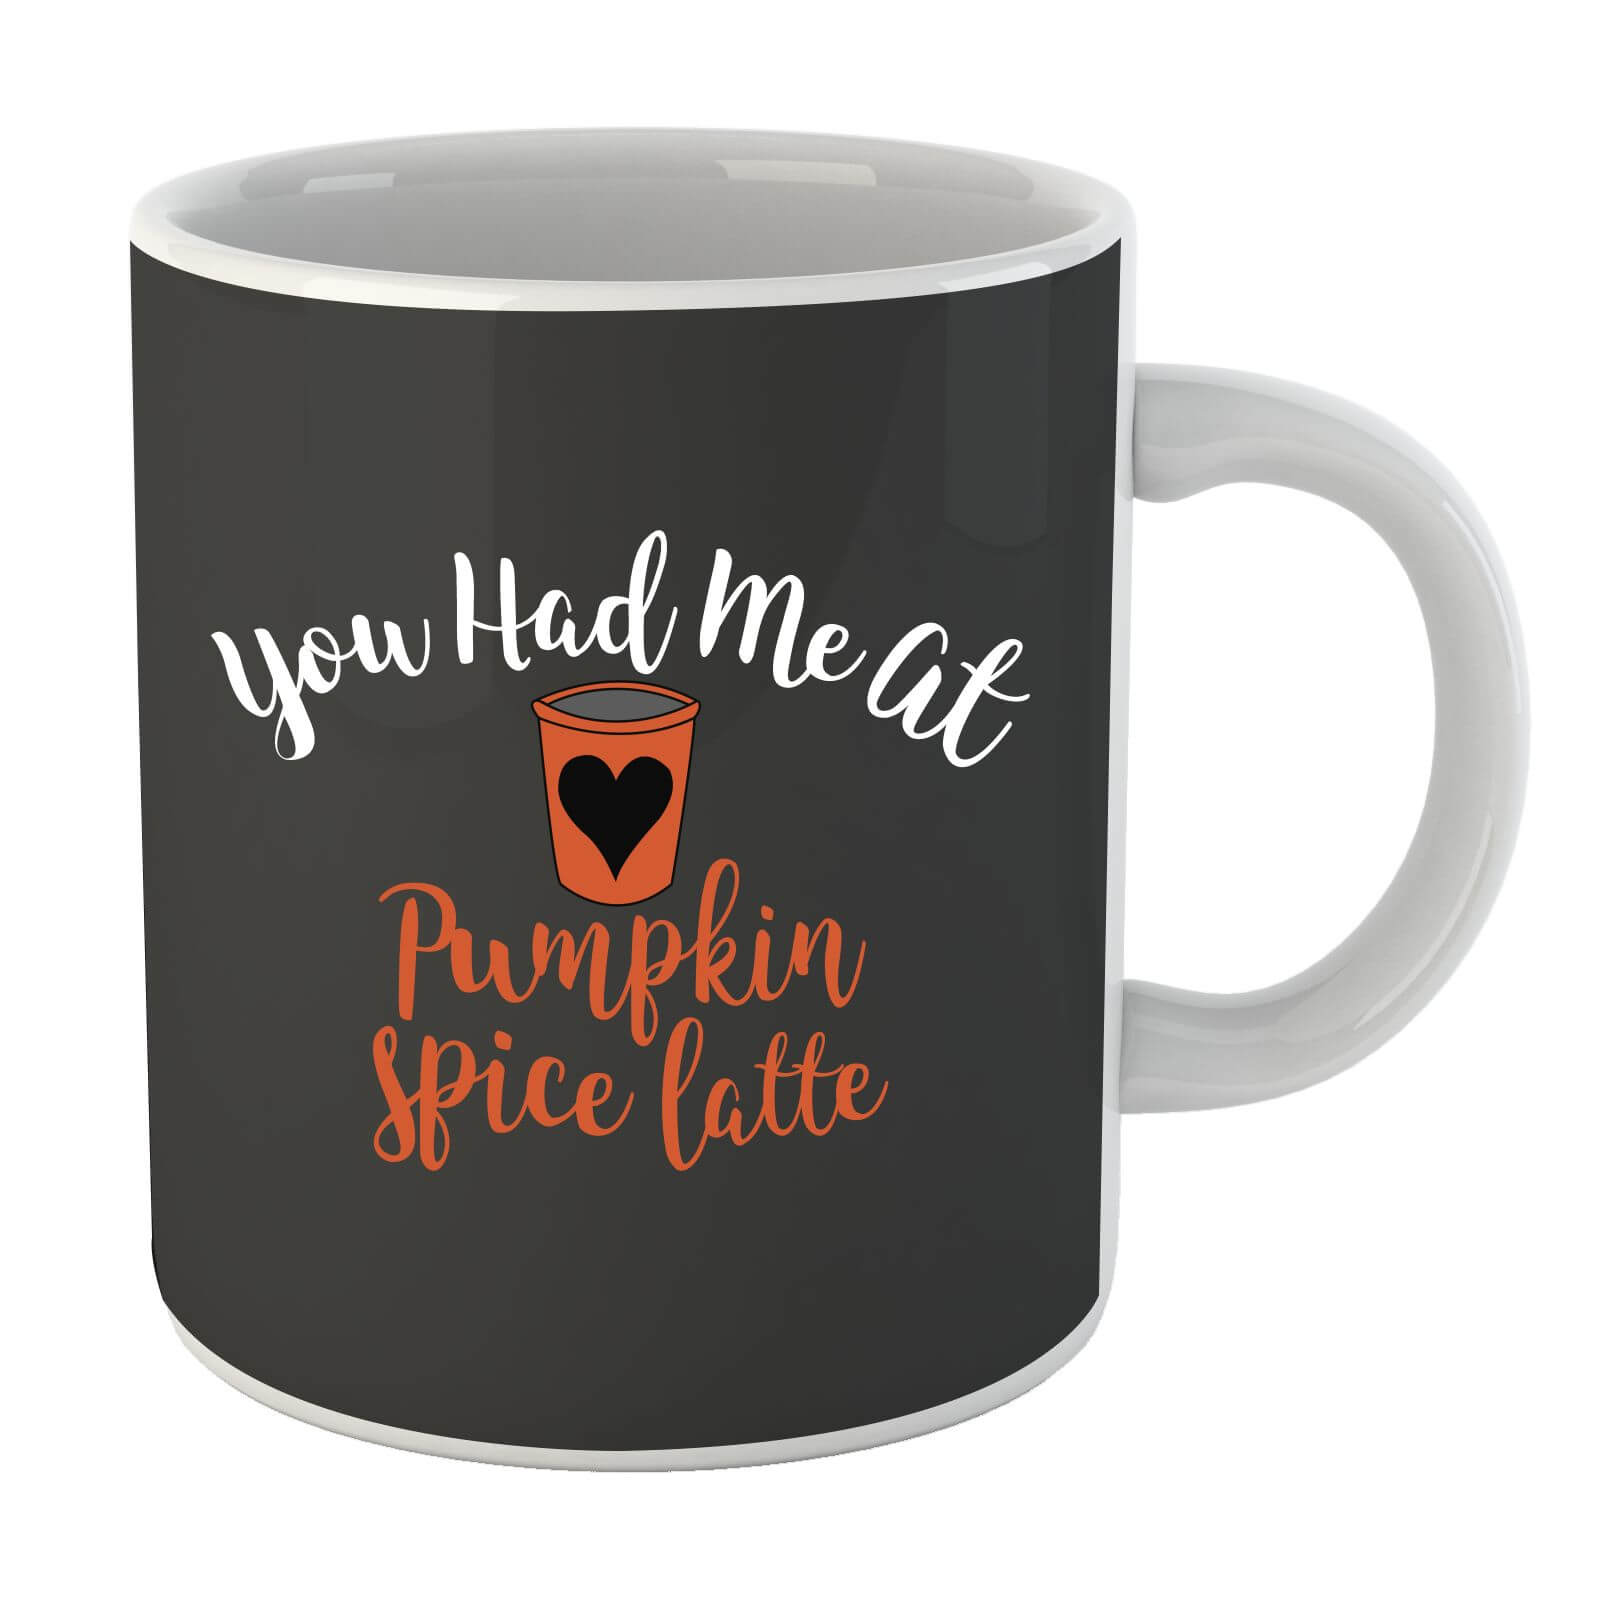 You Had me at Pumpkin Spice Latte Mug